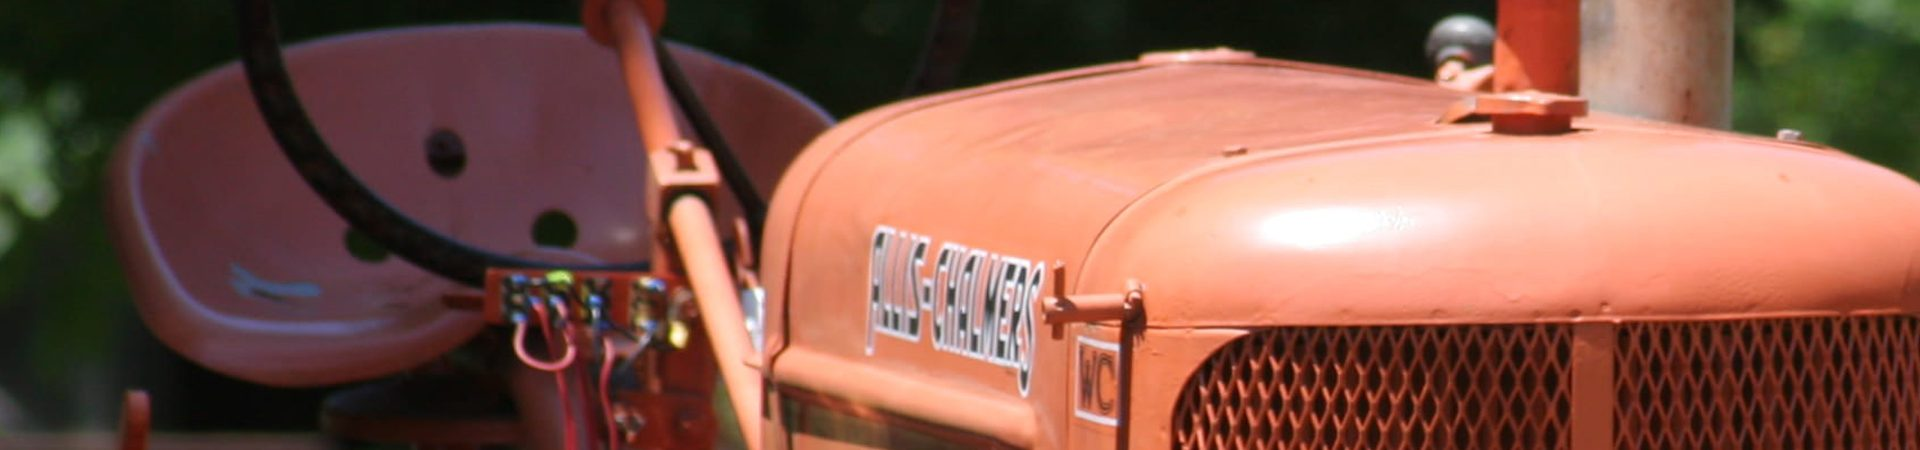 Allis-Chalmers Tractor - Story